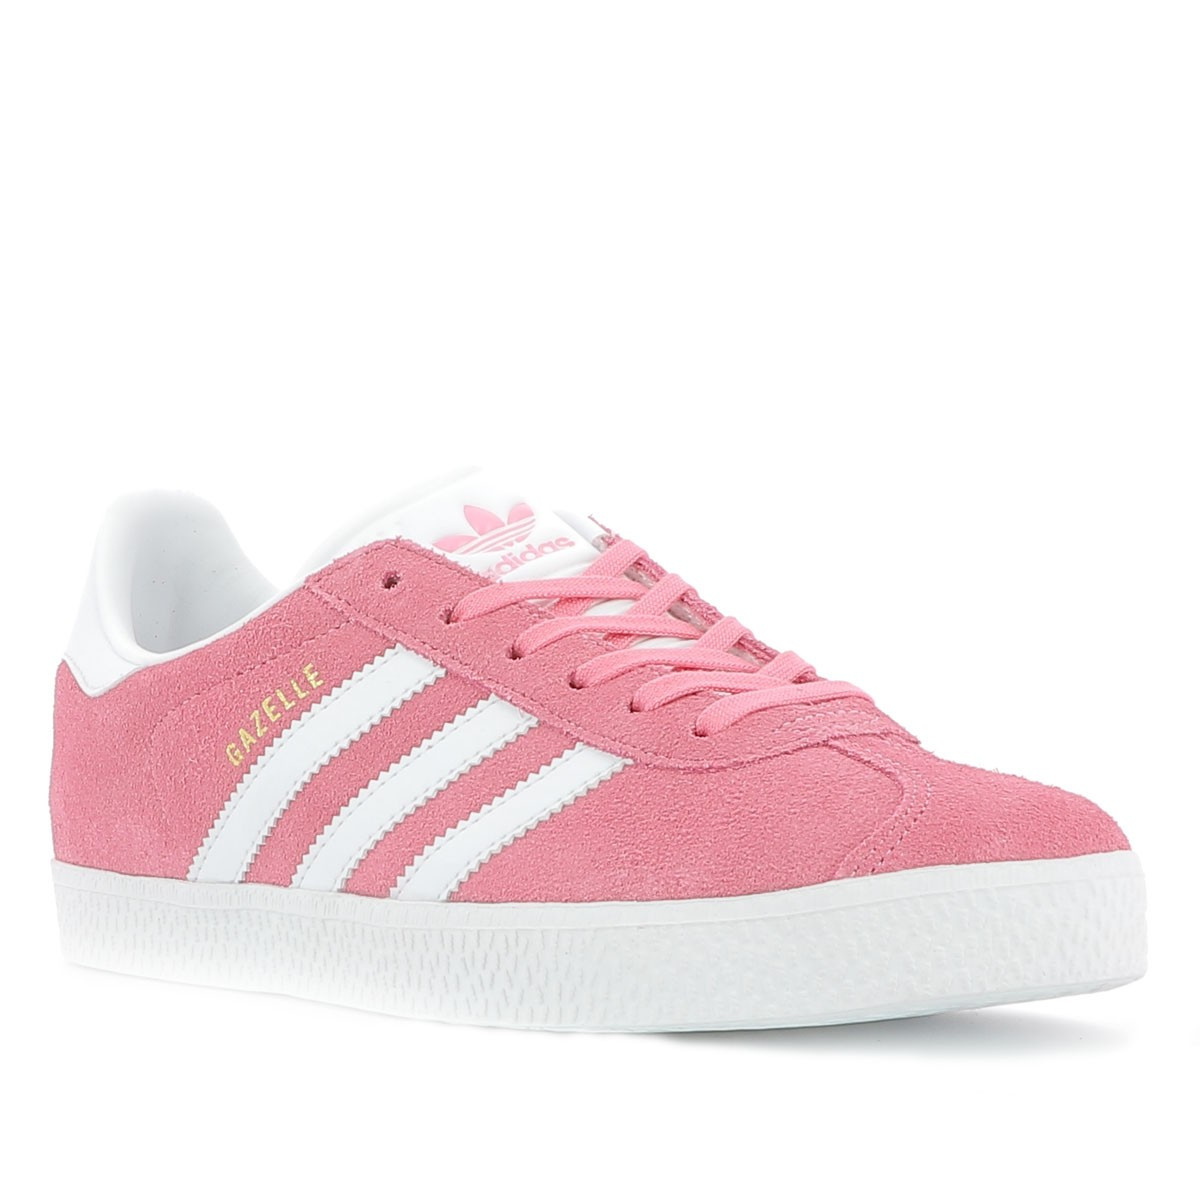 ADIDAS ORIGINALS Baskets Gazelle fille rose